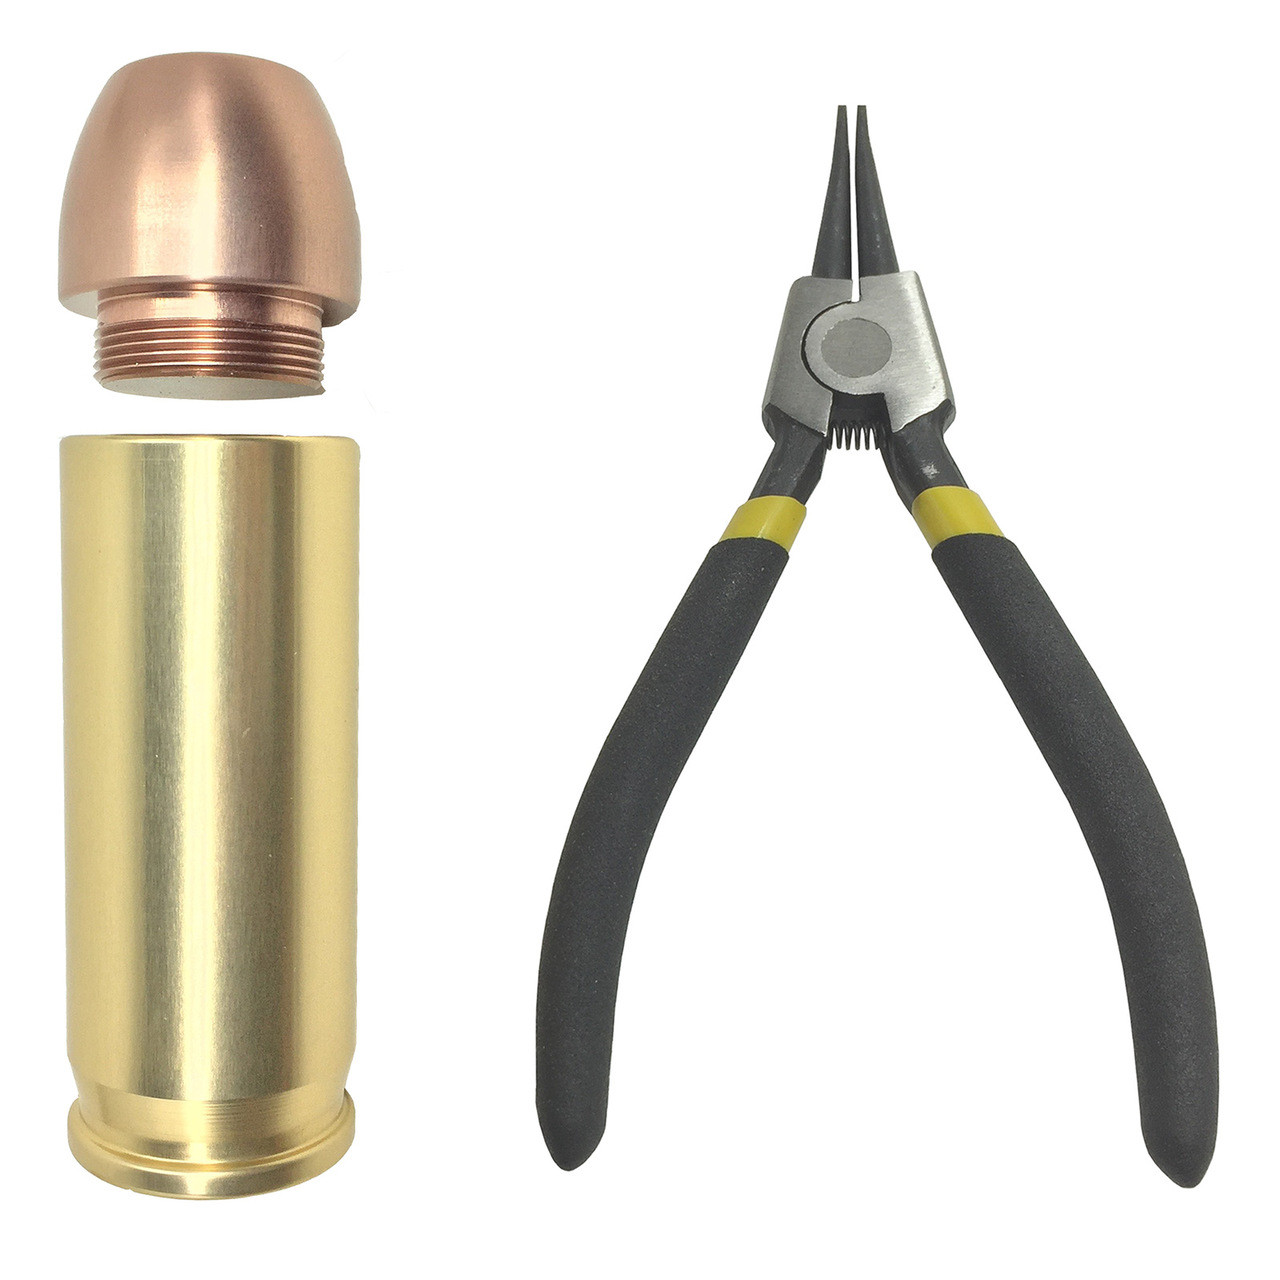 The Bullet Handle™ for Dillon Reloaders